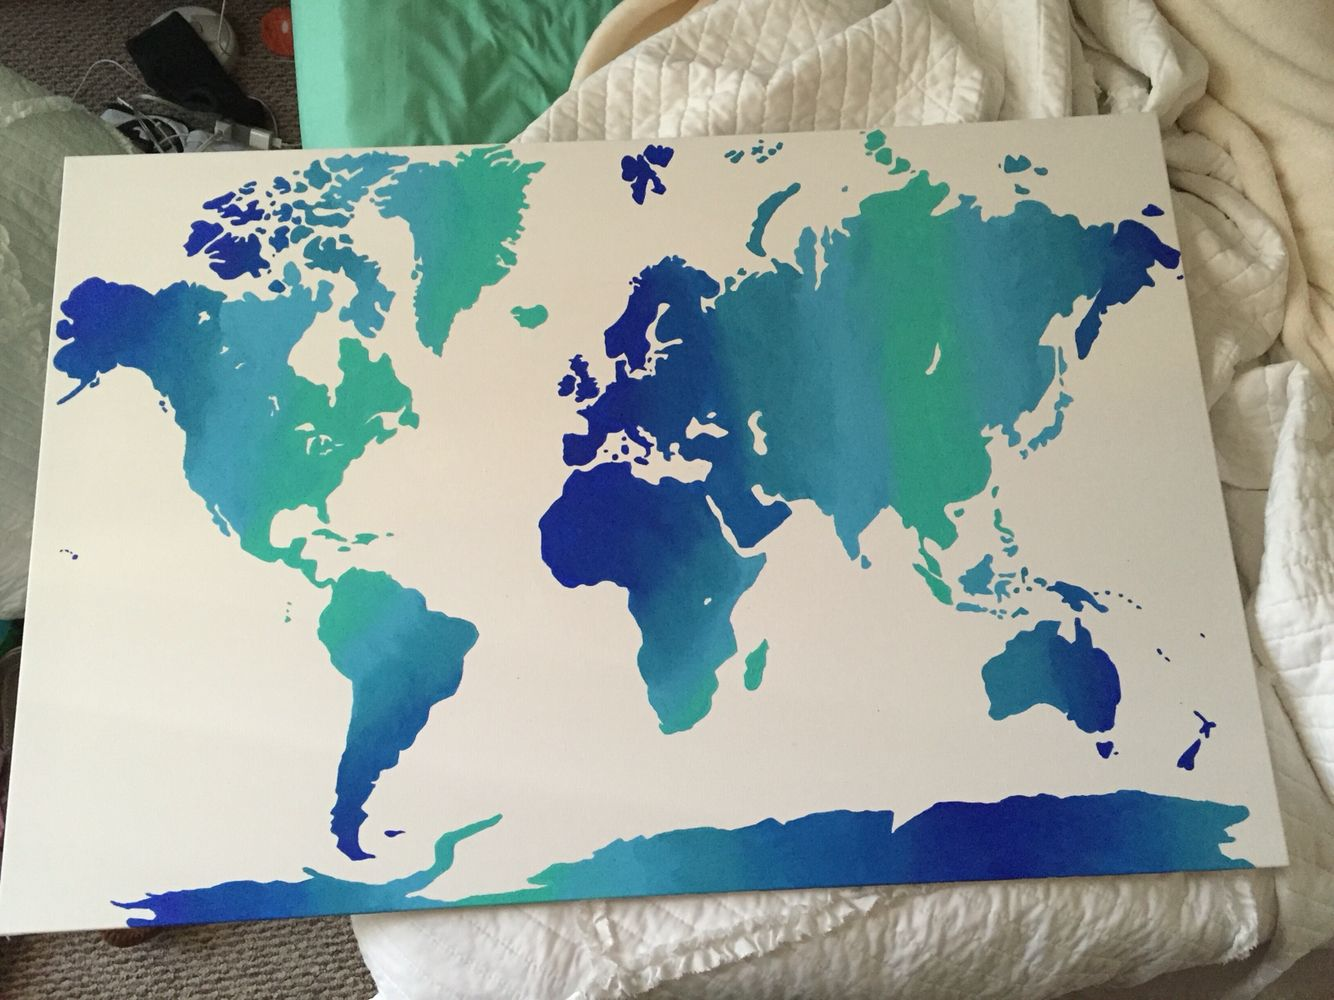 Ombr world map canvas painting canvas pinterest world ombr world map canvas painting gumiabroncs Choice Image